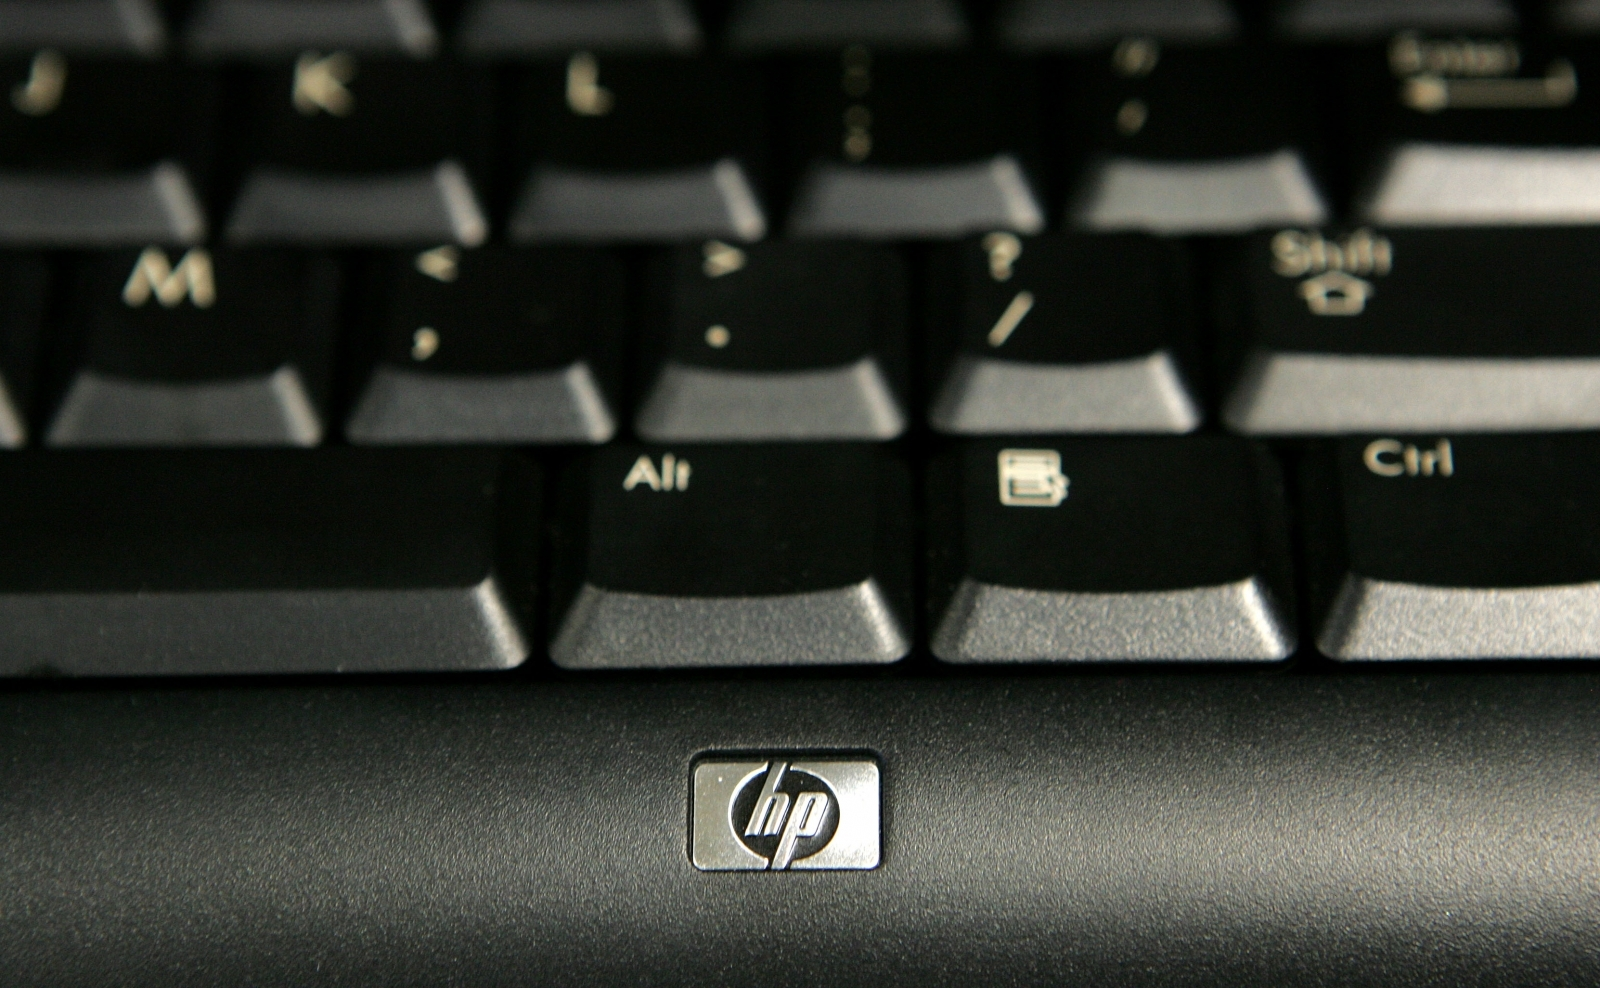 HP Accused of Quietly Installing Spyware on Windows PCs